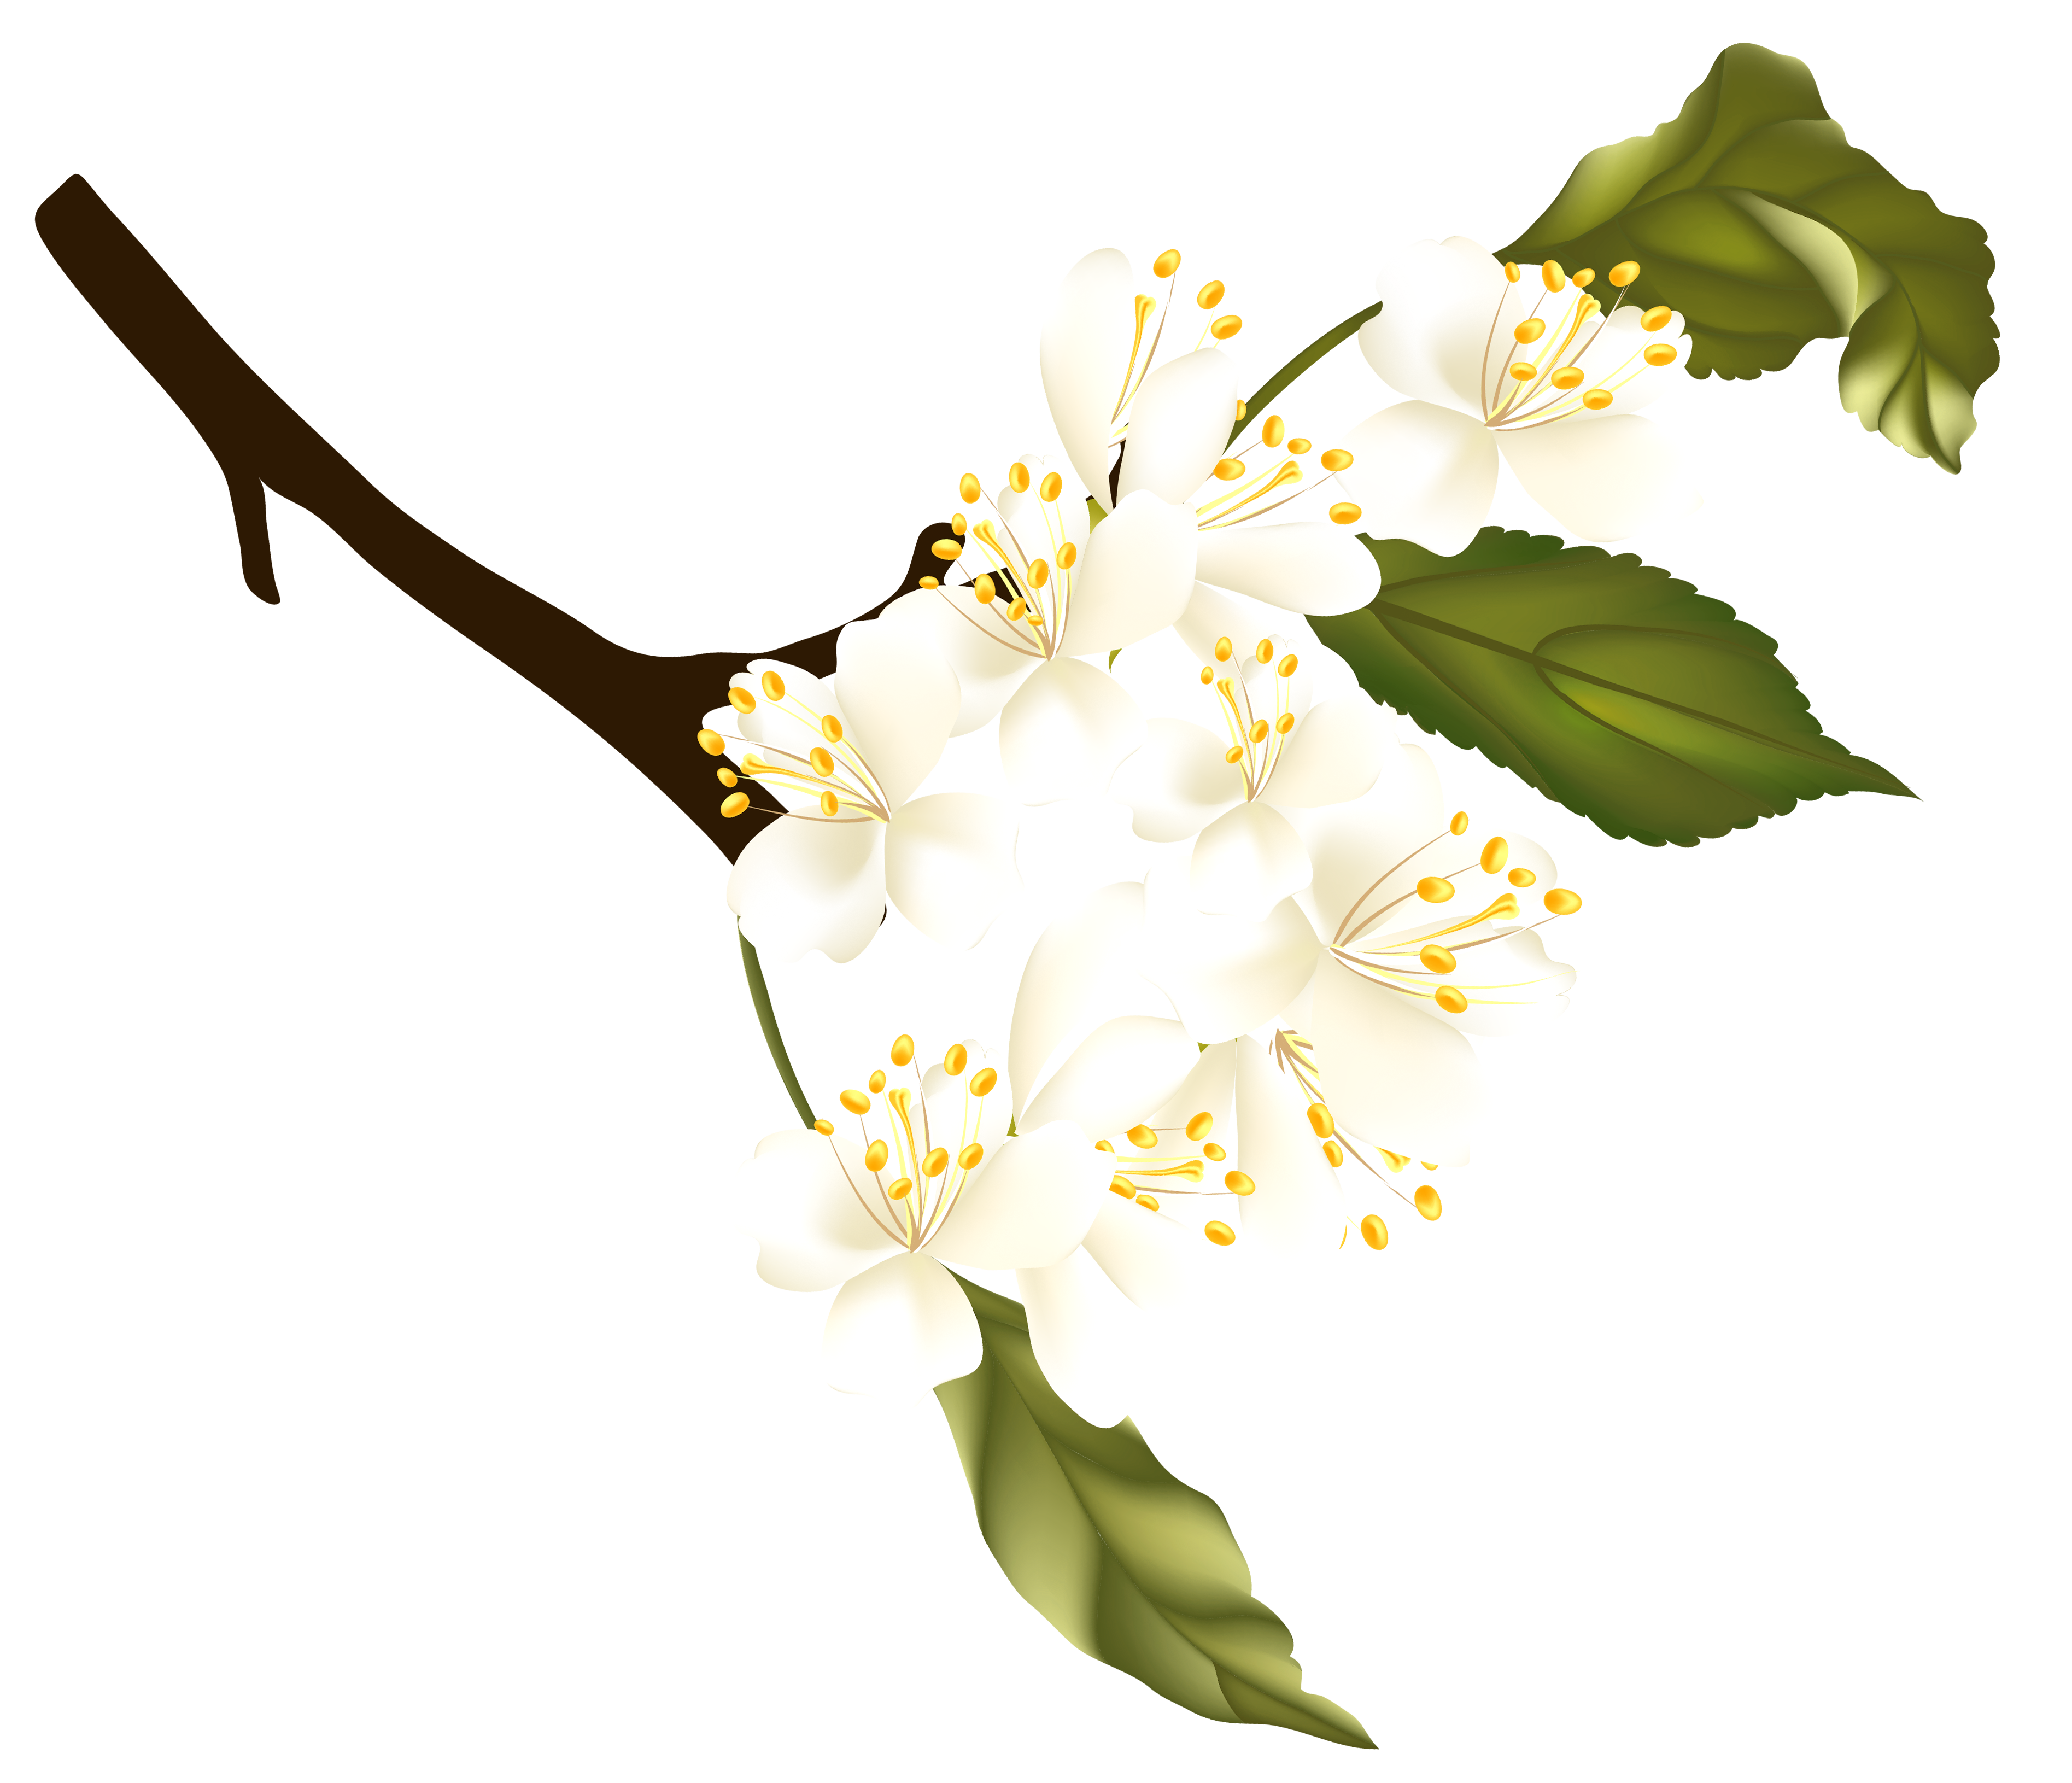 Spring element png gallery. Stick clipart branch